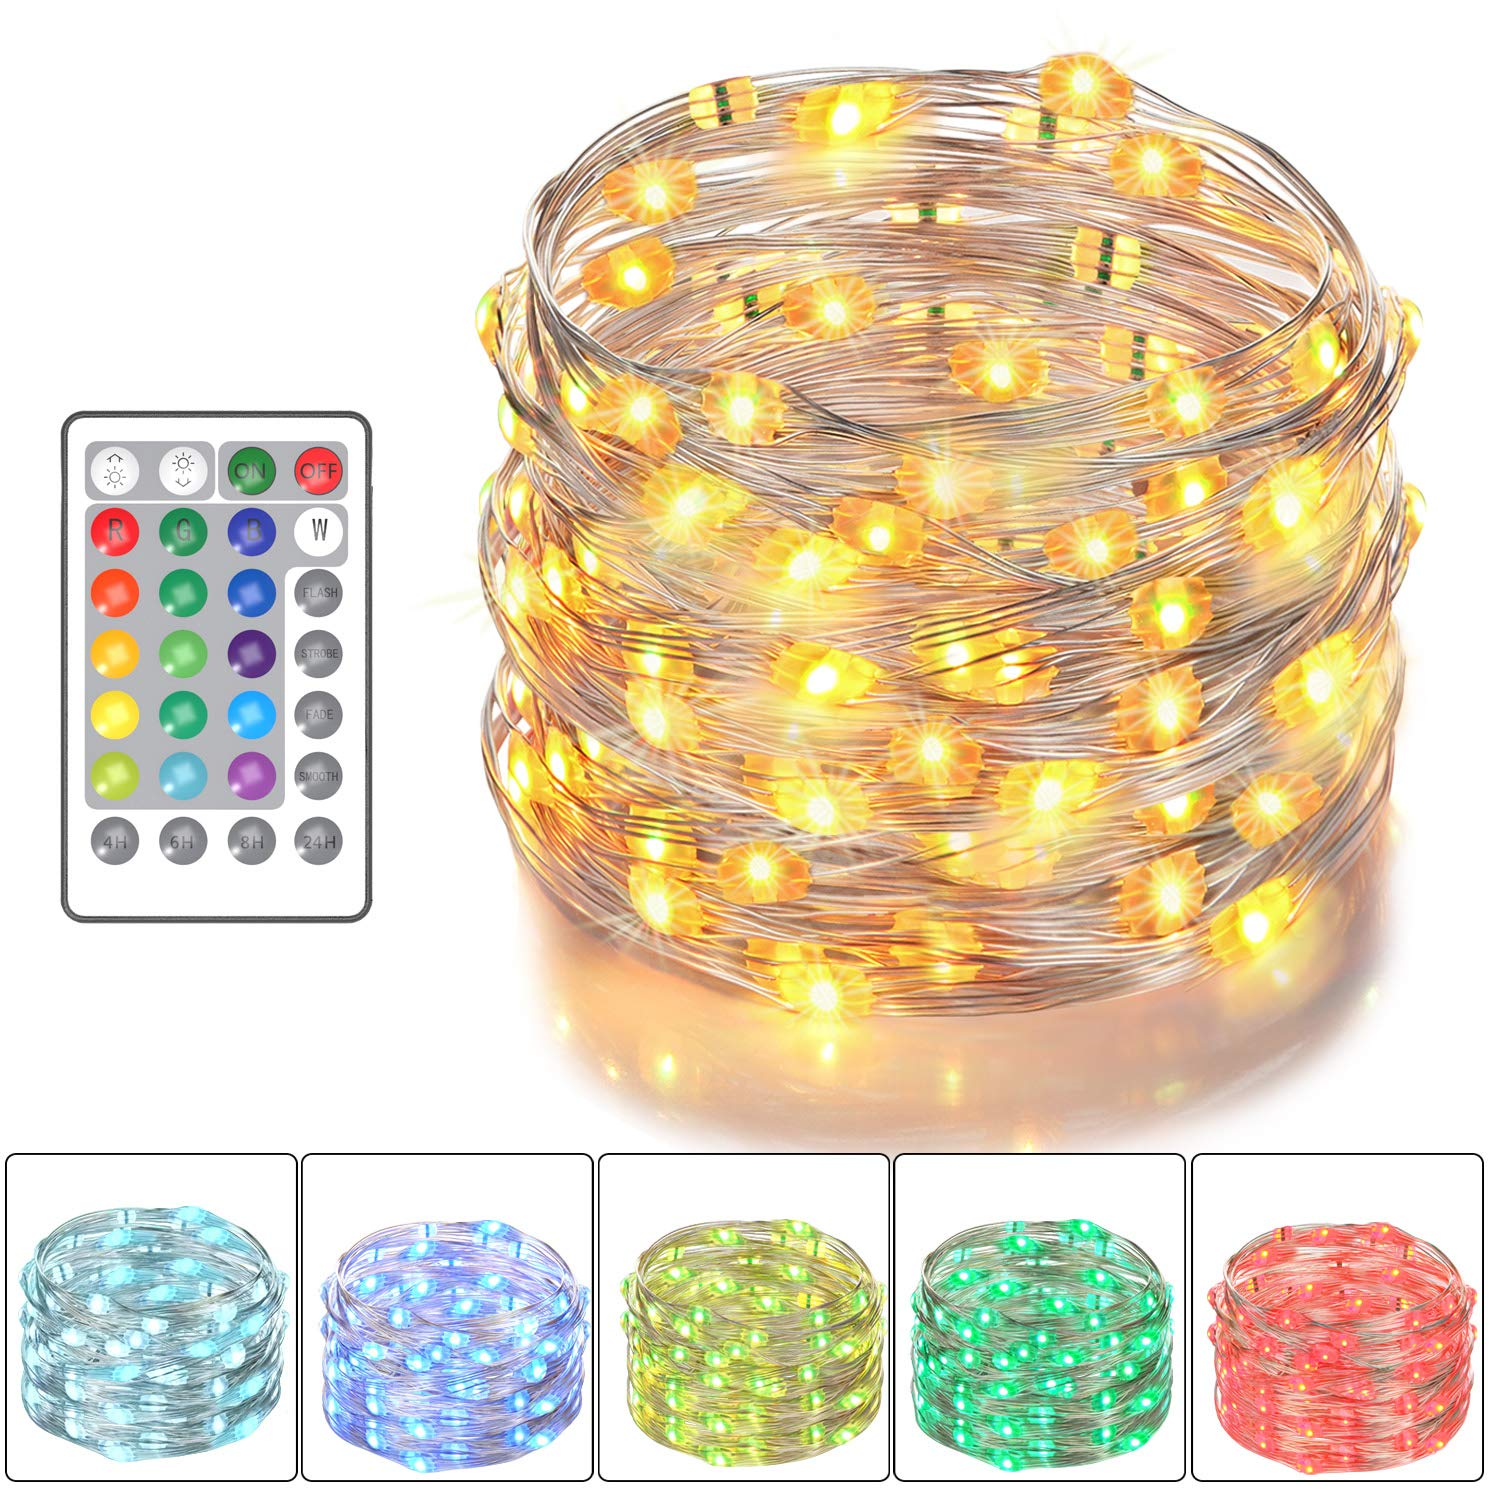 Asmader Led Fairy Battery Powered For Bedroom Patio Strobe Circuit Amazon Account Pinterest Indoor Party Garden 16 Multi Color Changing String Lights With Remote Control